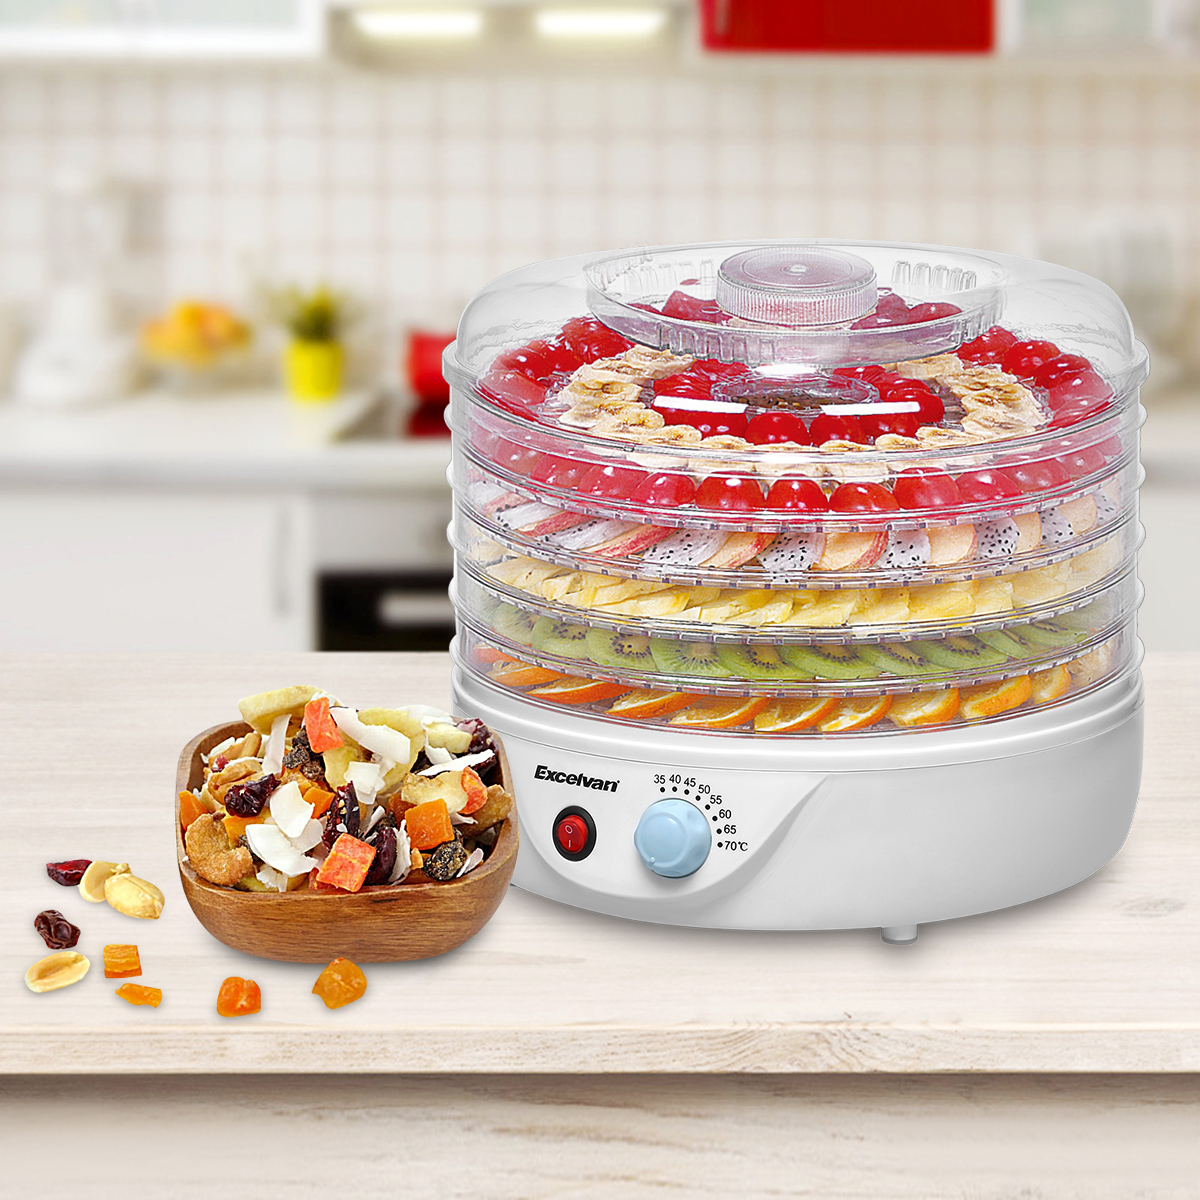 Excelvan 5-Tray Electric Food Dehydrator by Excelvan